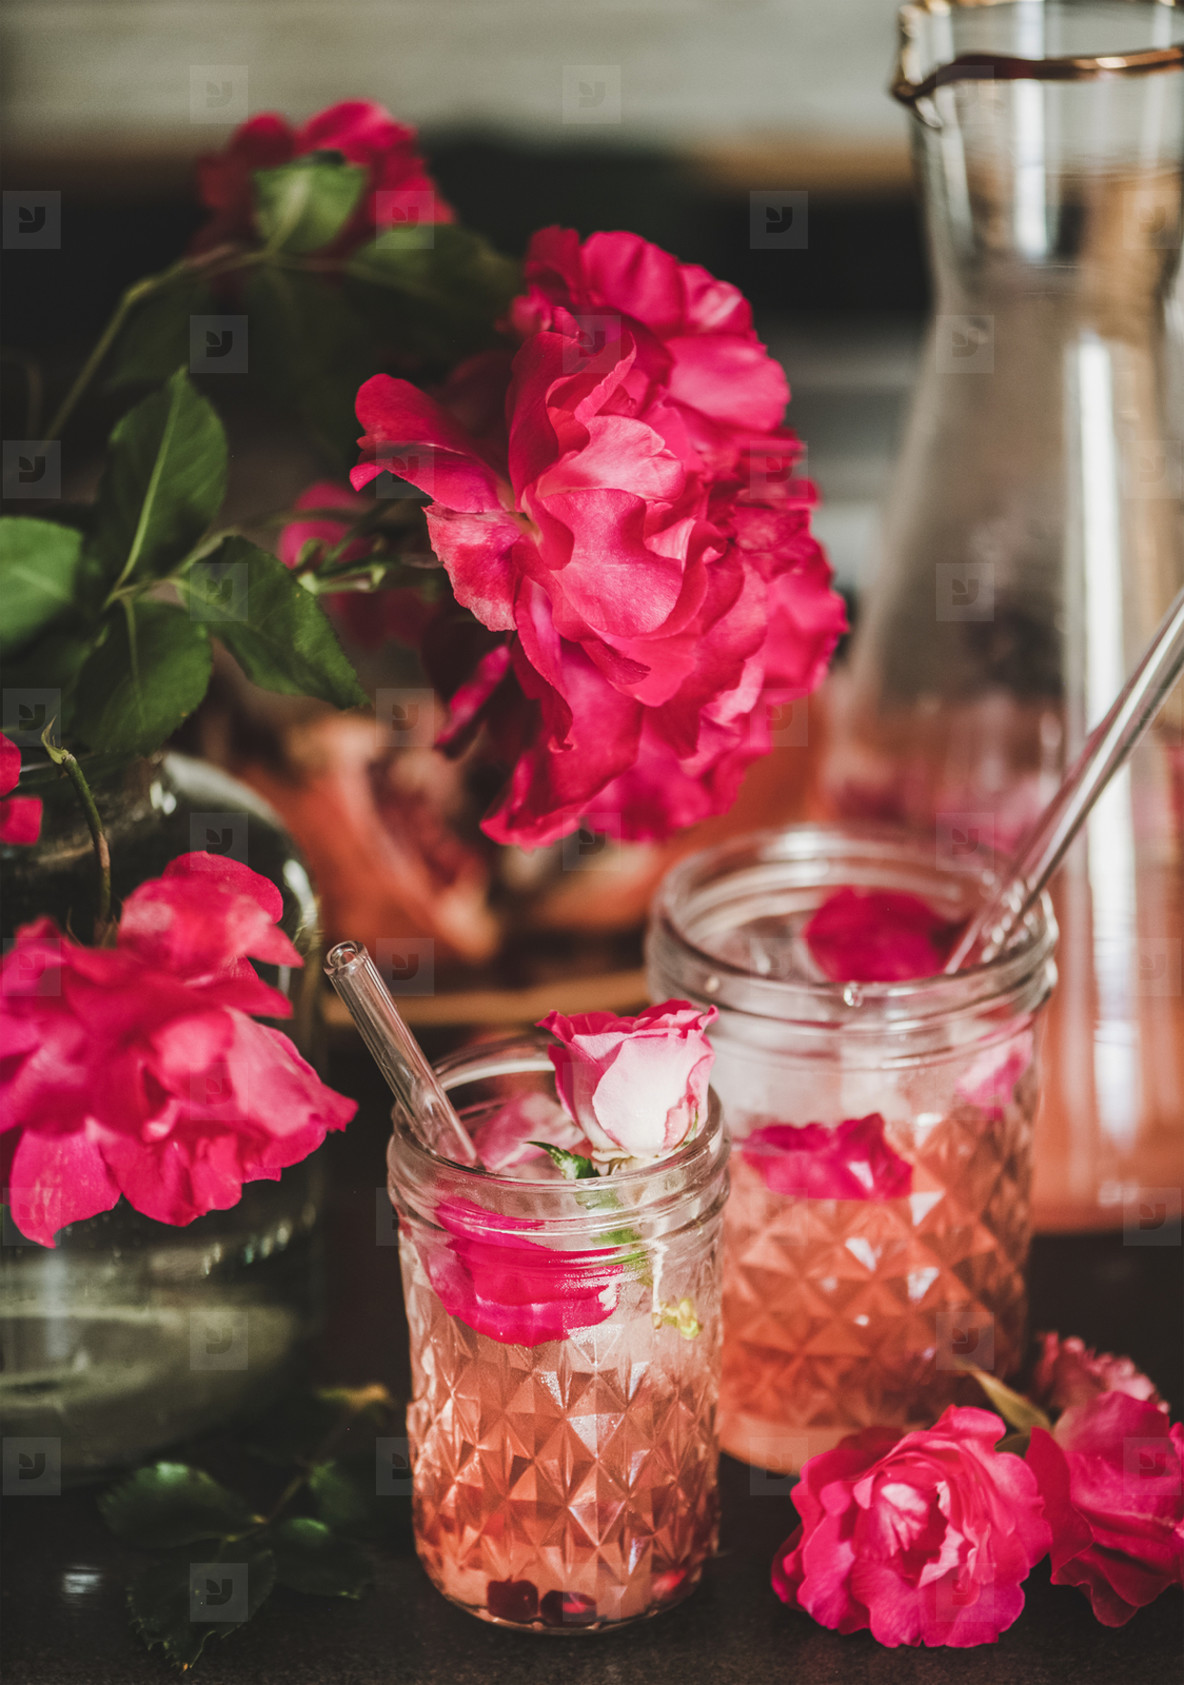 Rose lemonade with ice and petals over kitchen counter  close up